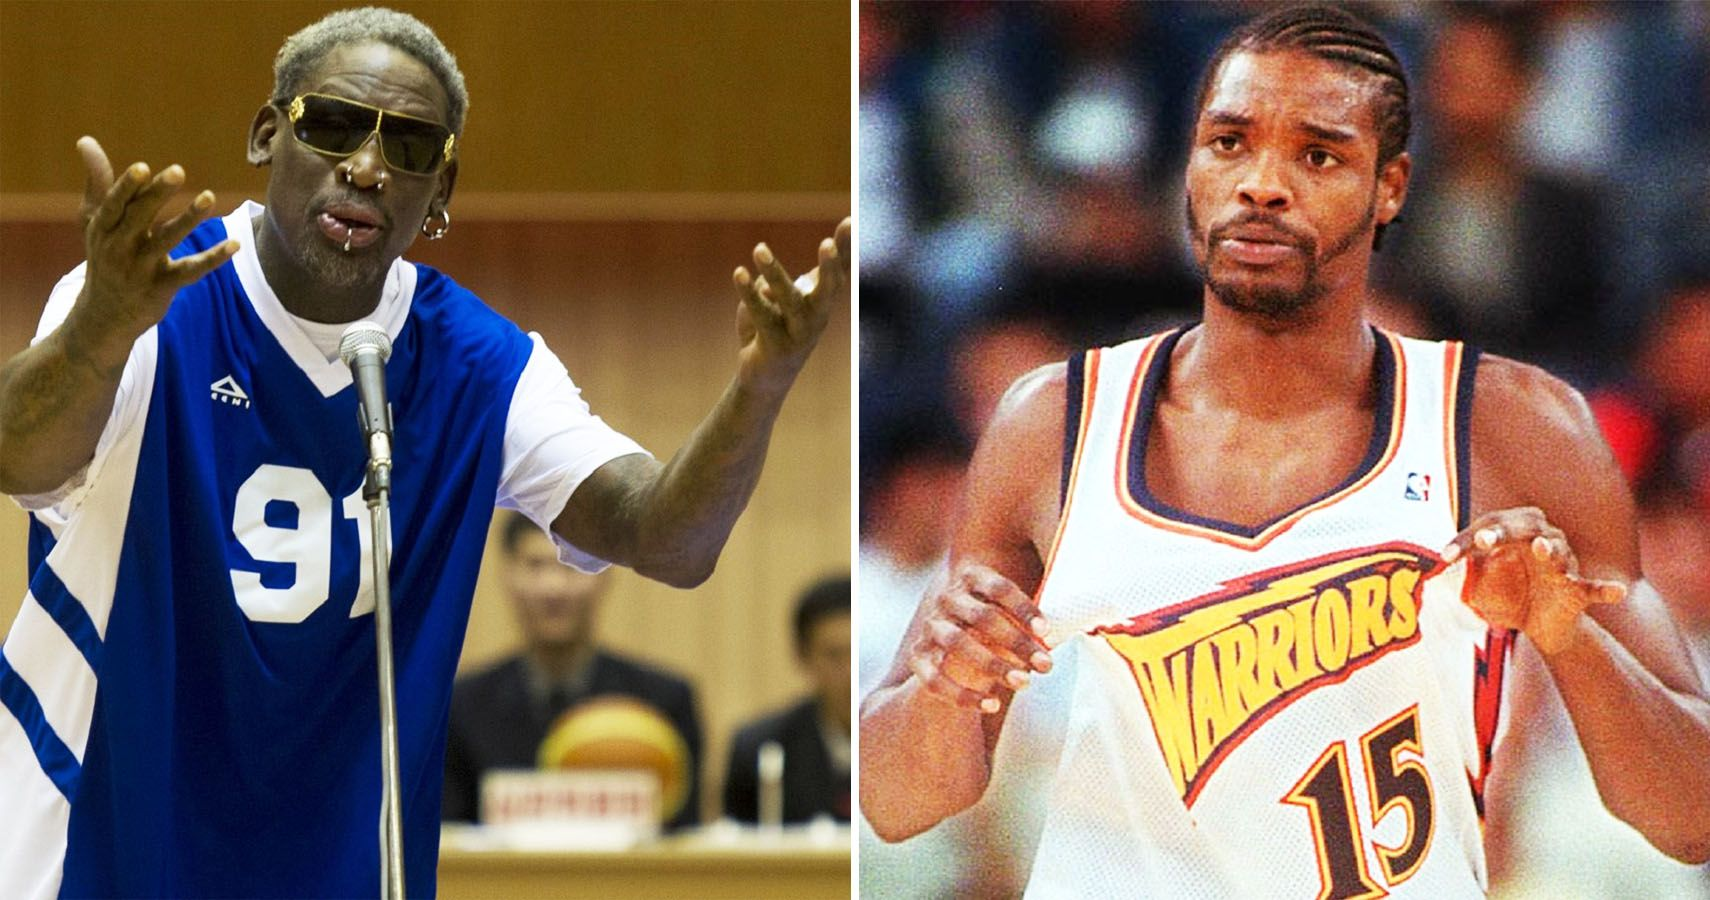 15 Great NBA Players That Were Terrible Human Beings